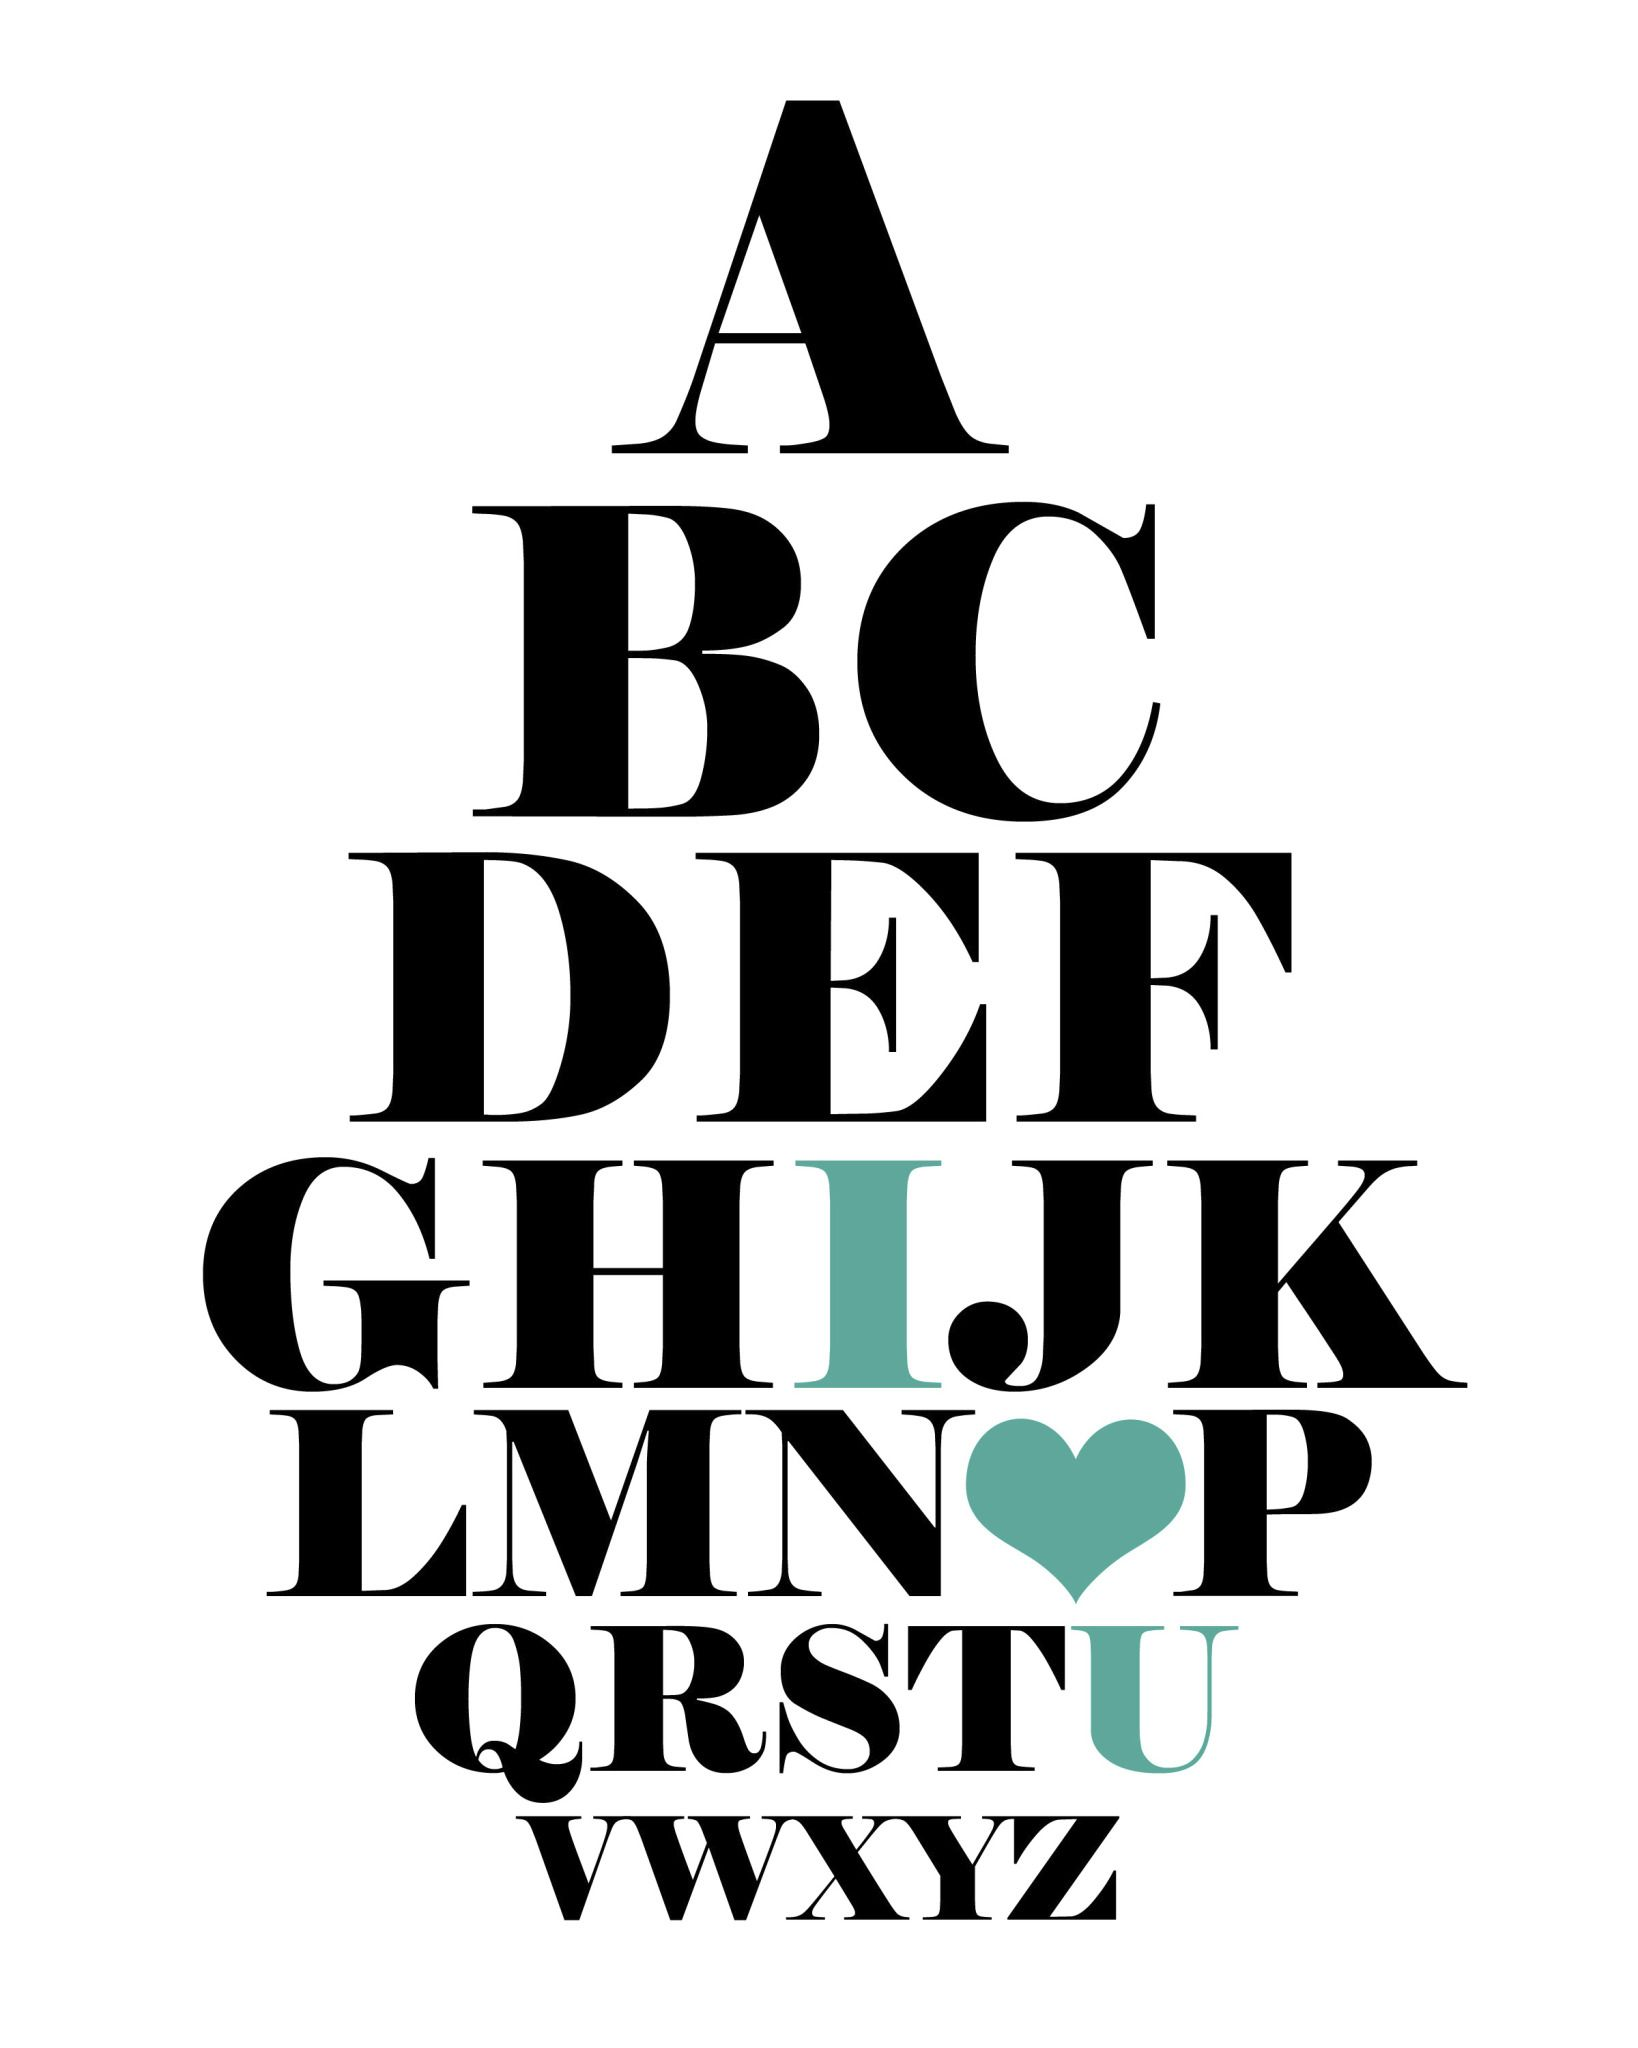 Eye Chart I Love You Tealg File Shared From Box For My